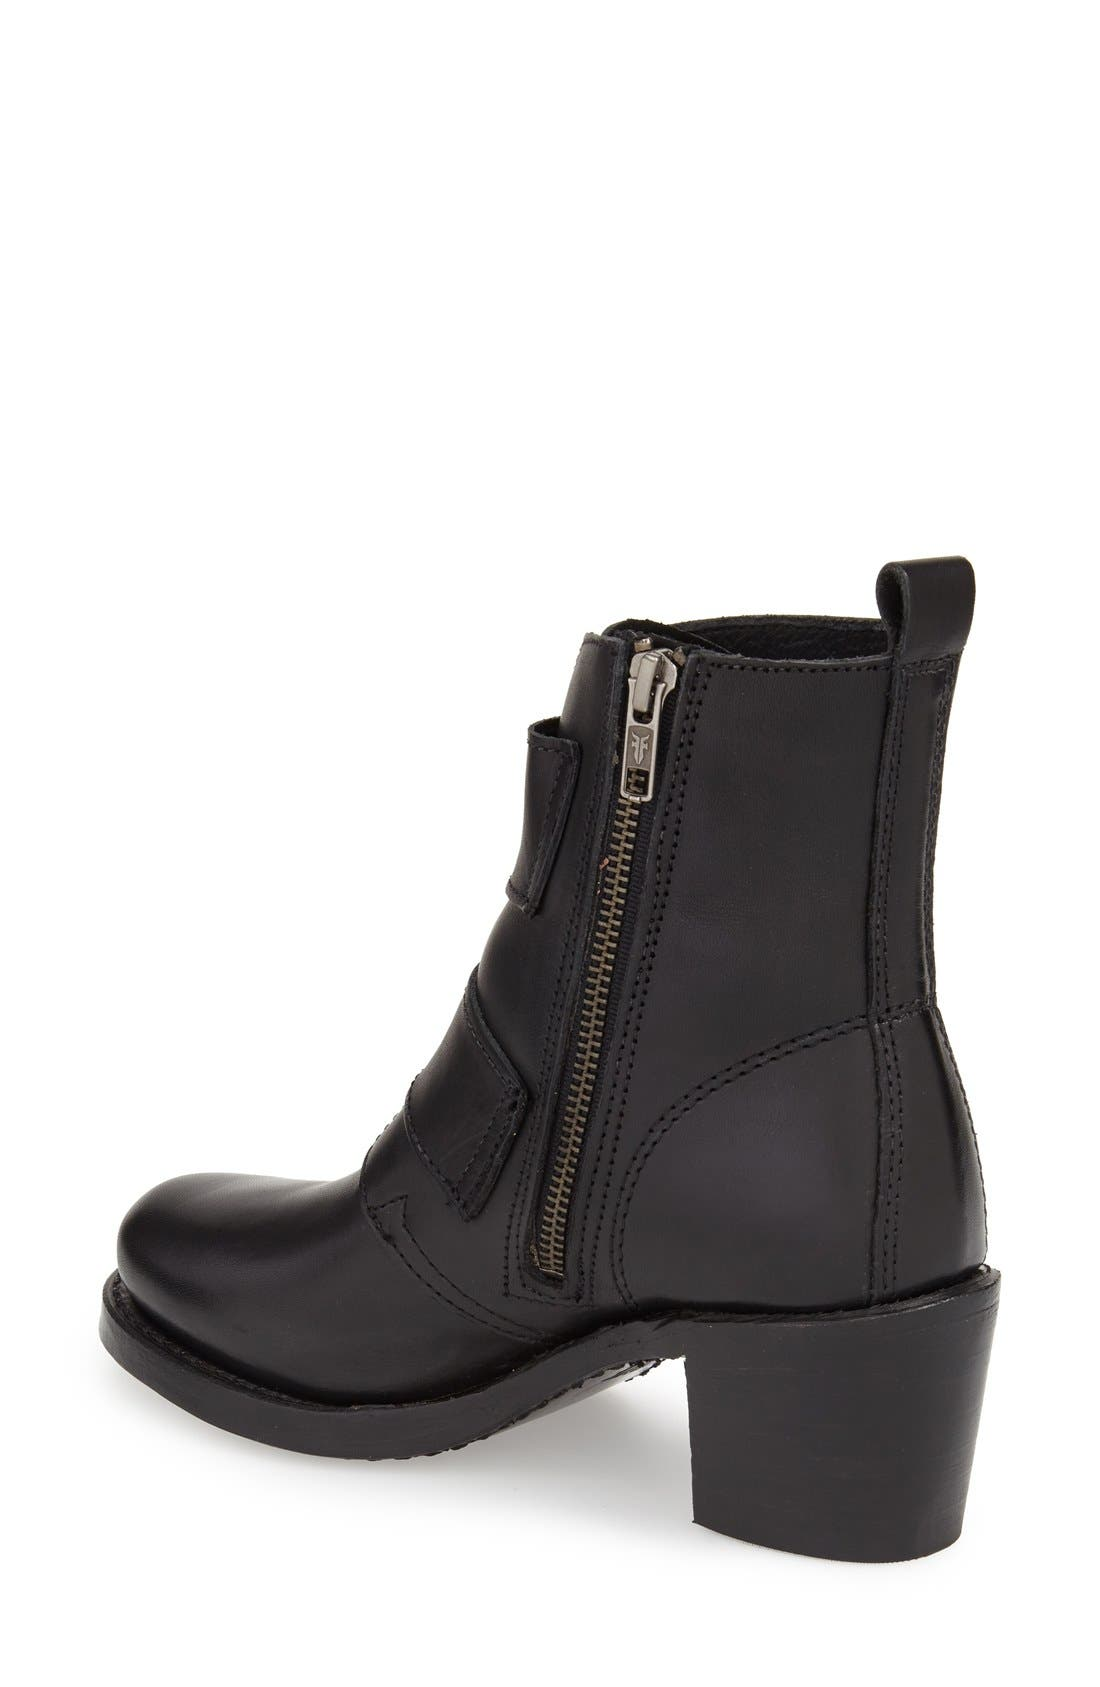 'Sabrina' Double Buckle Boot,                             Alternate thumbnail 9, color,